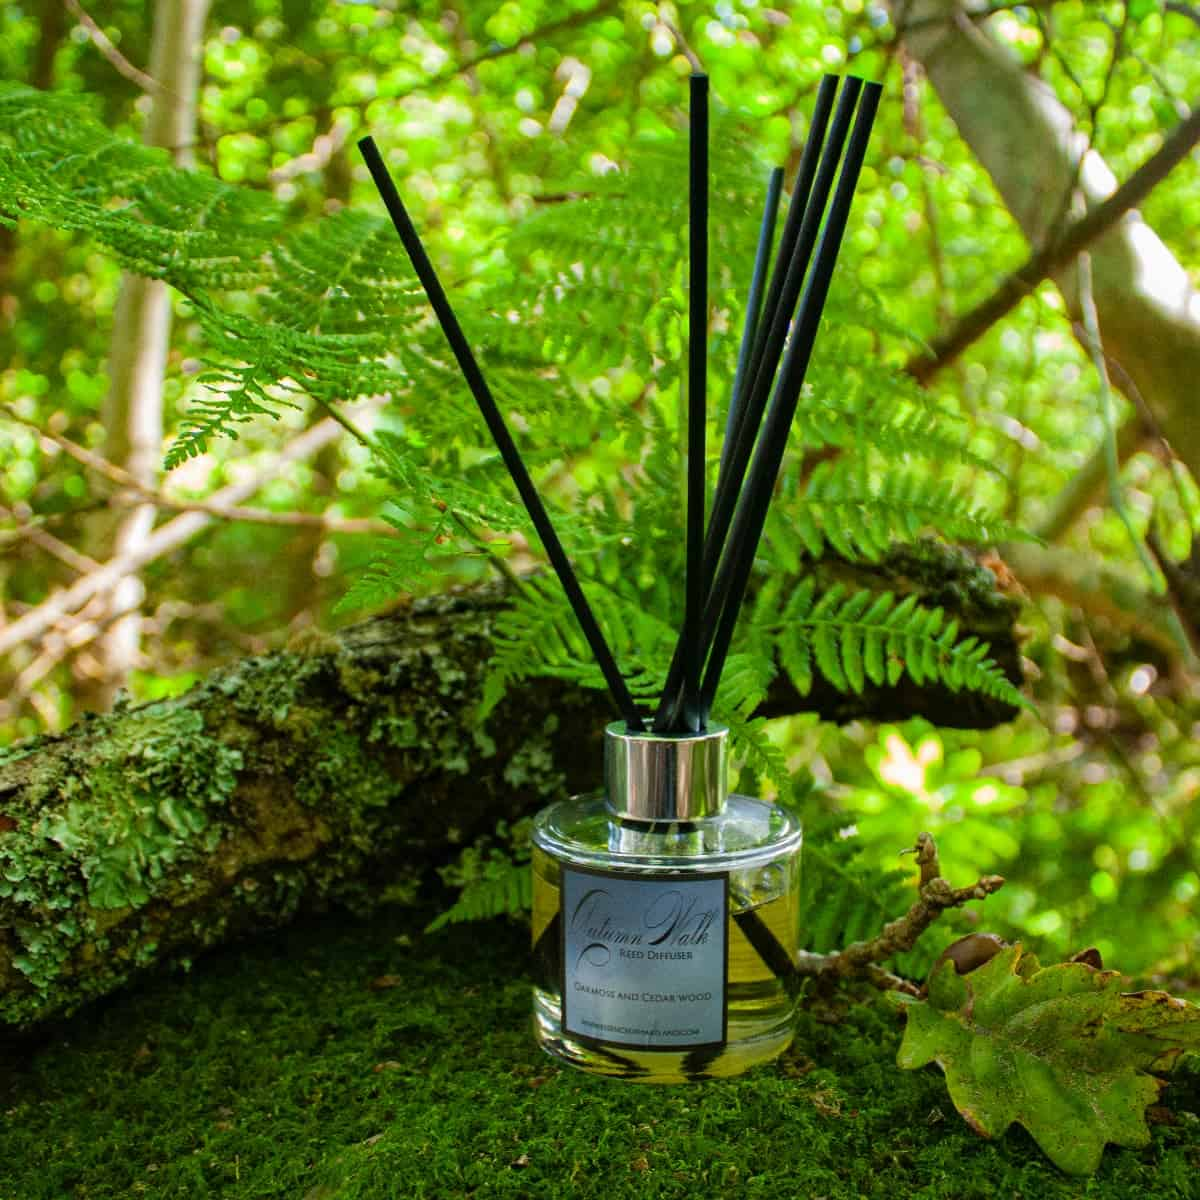 Autumn Walk diffuser outside amongst a mossy tree and fern leaves.